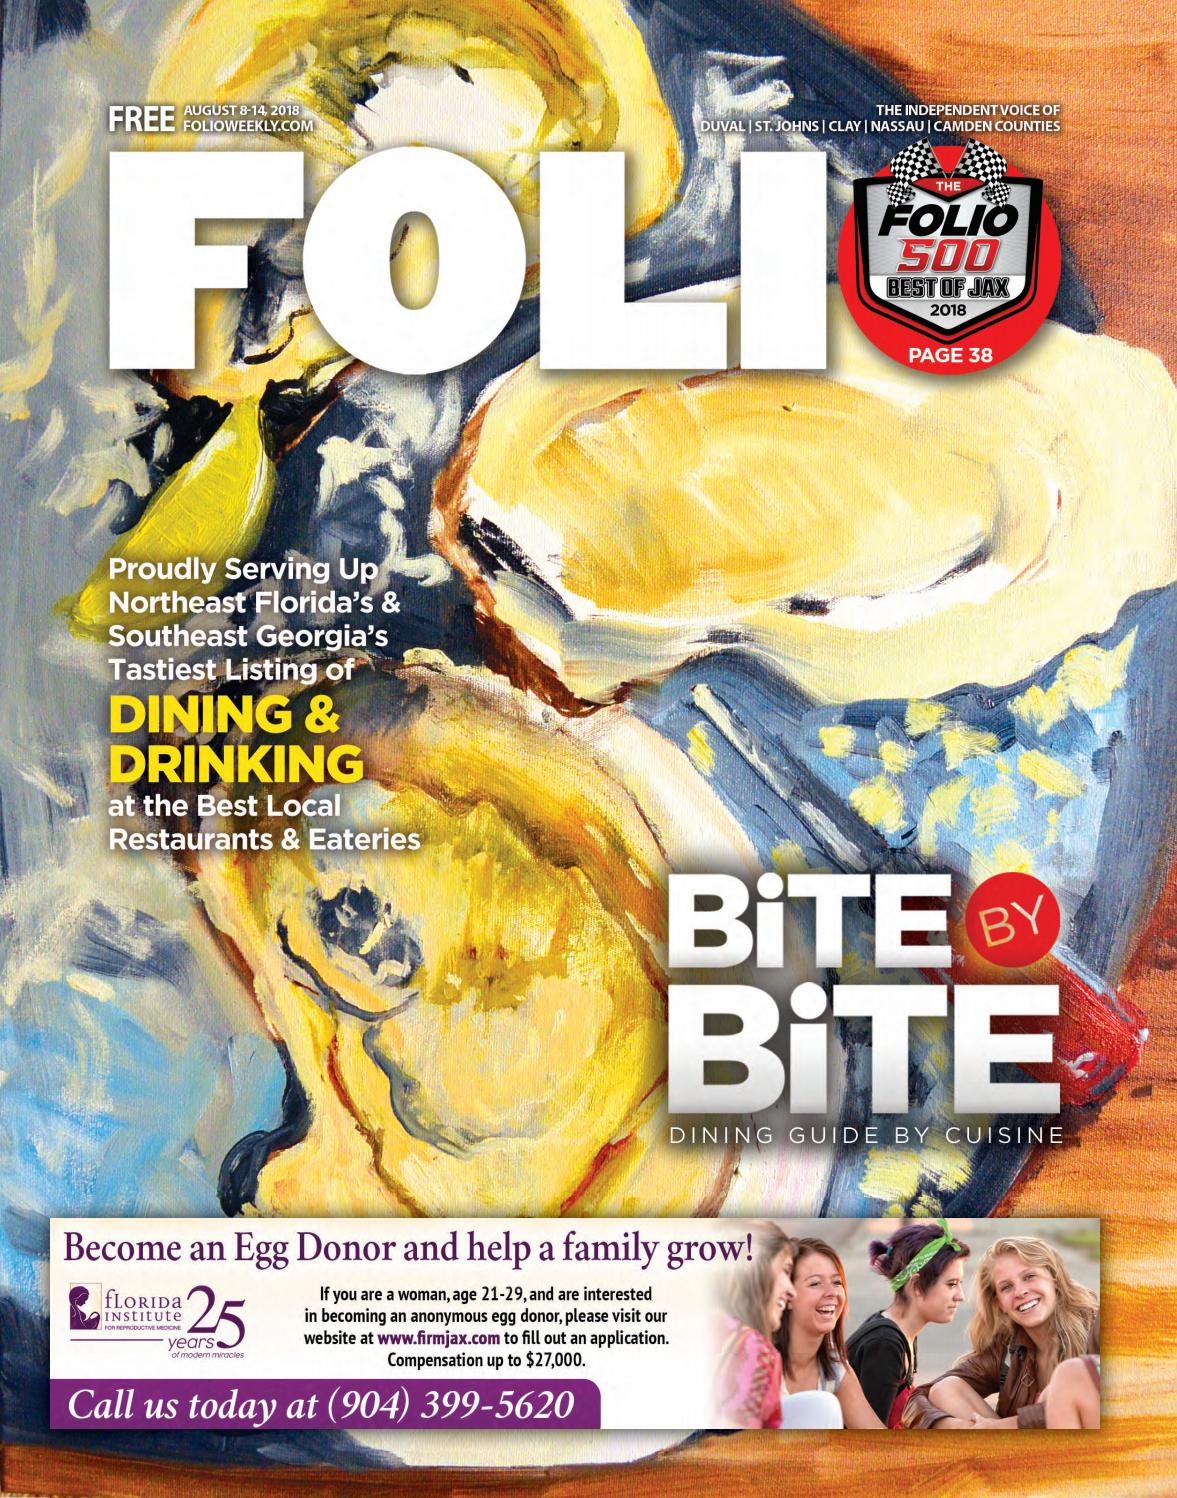 Bite By Bite Dining Guide By Cuisine By Folio Weekly Issuu